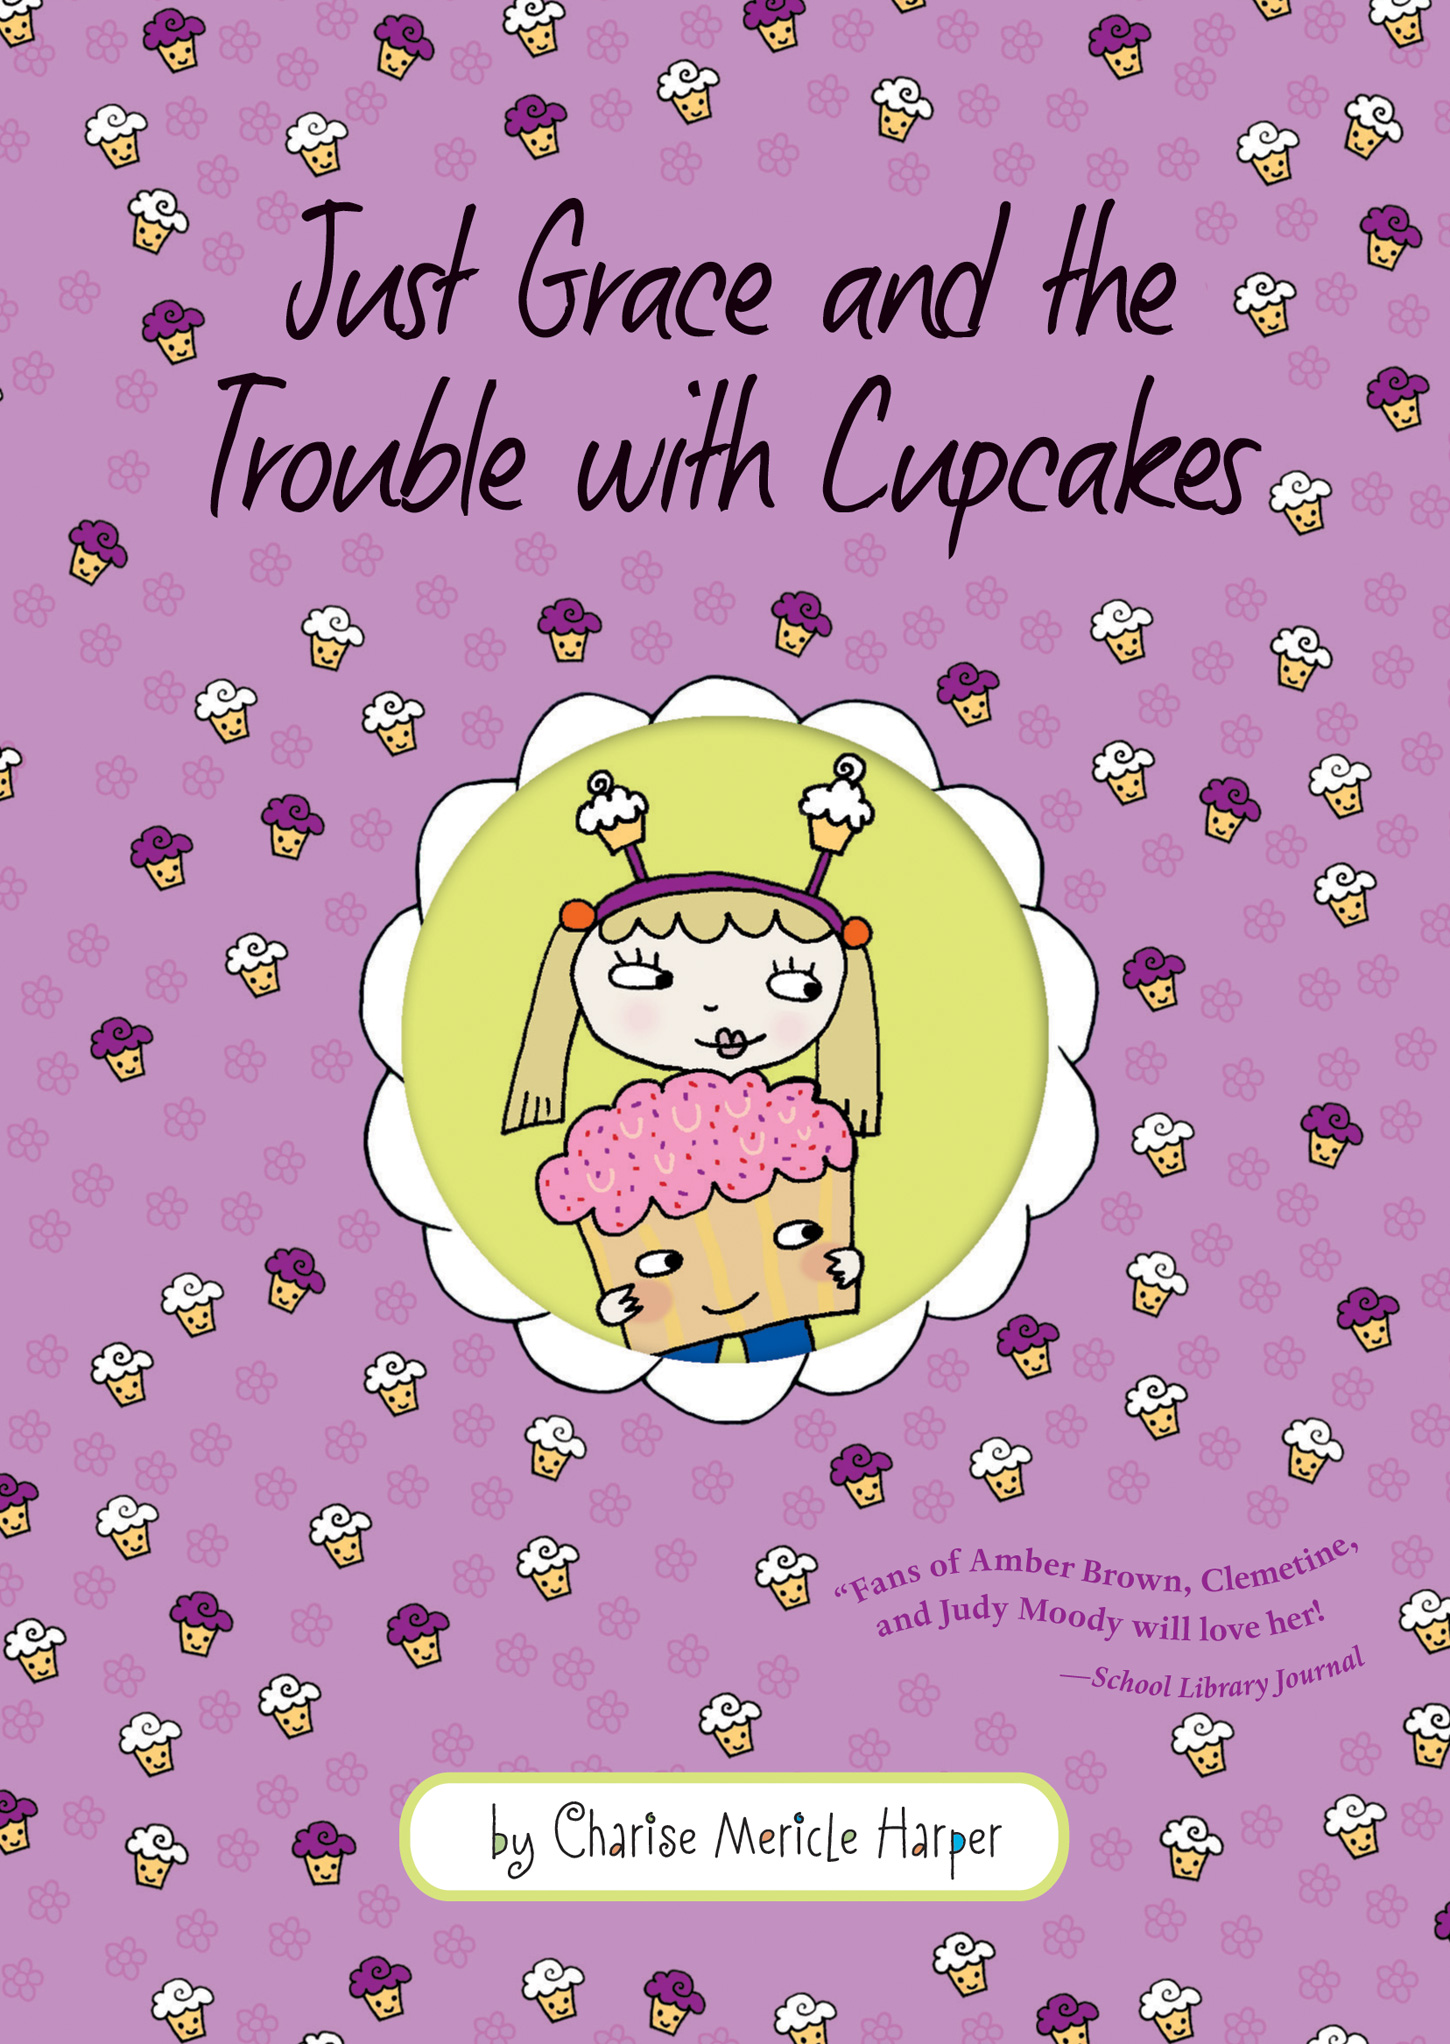 Just Grace and the Trouble with Cupcakes-9780547877440